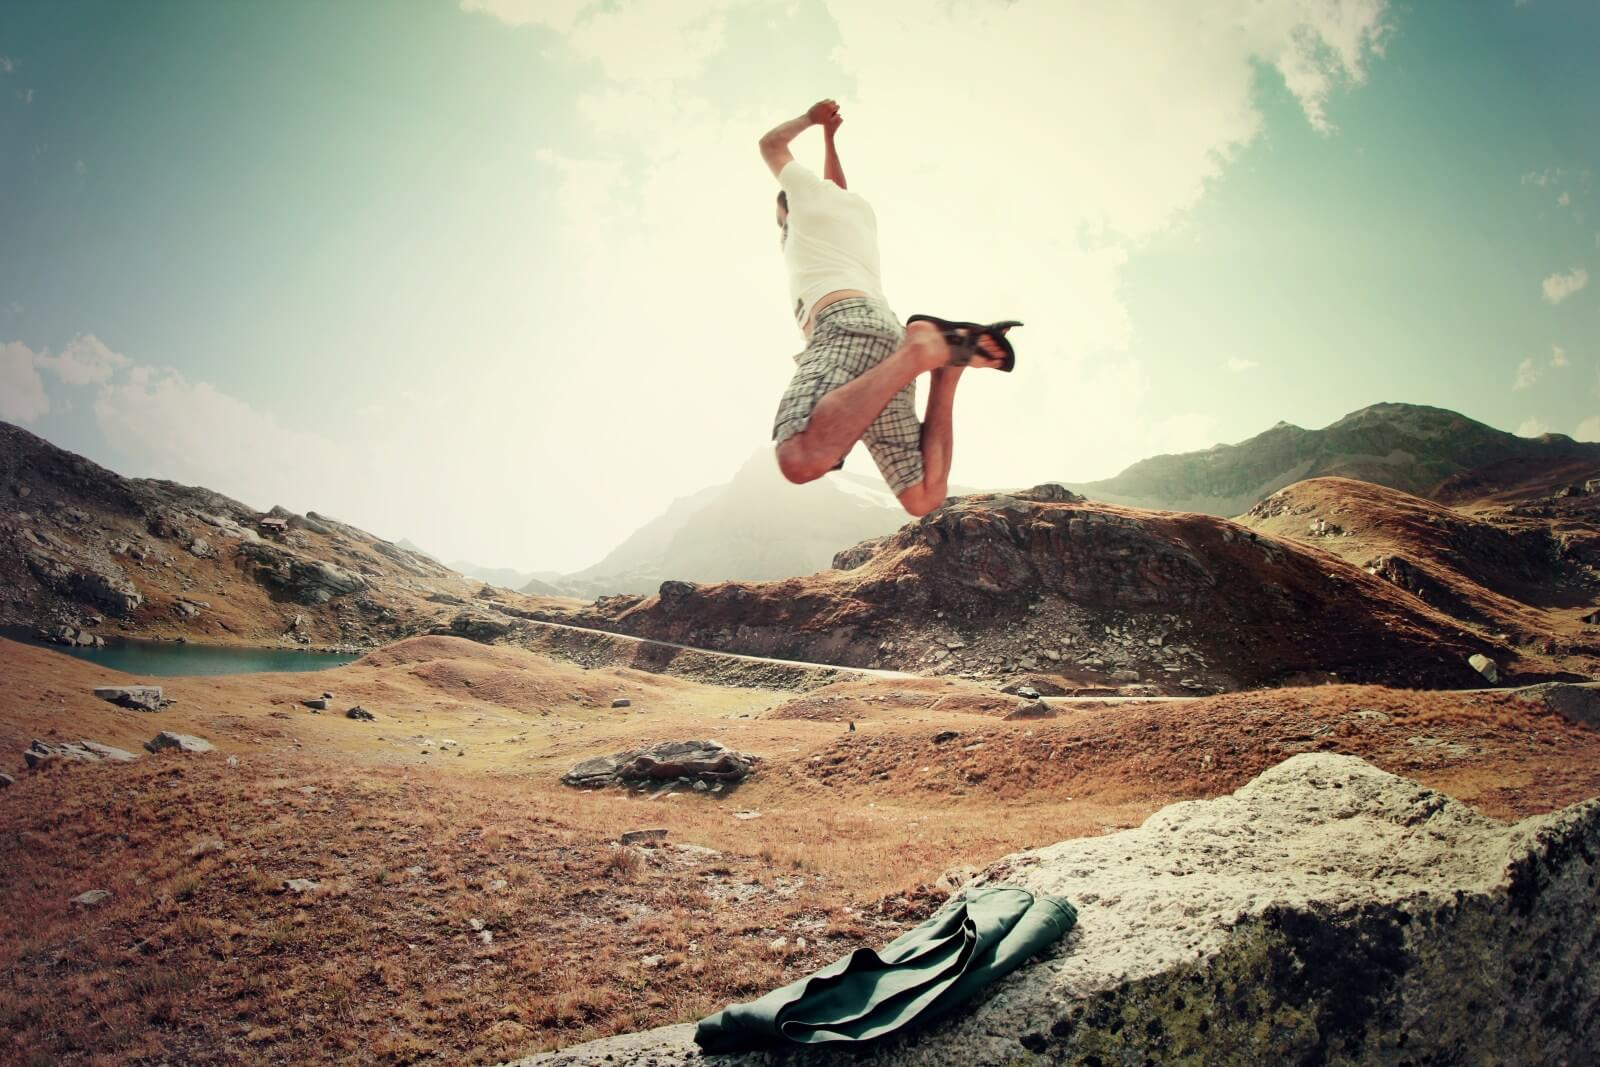 Man jumping for joy off a rock in the wilderness